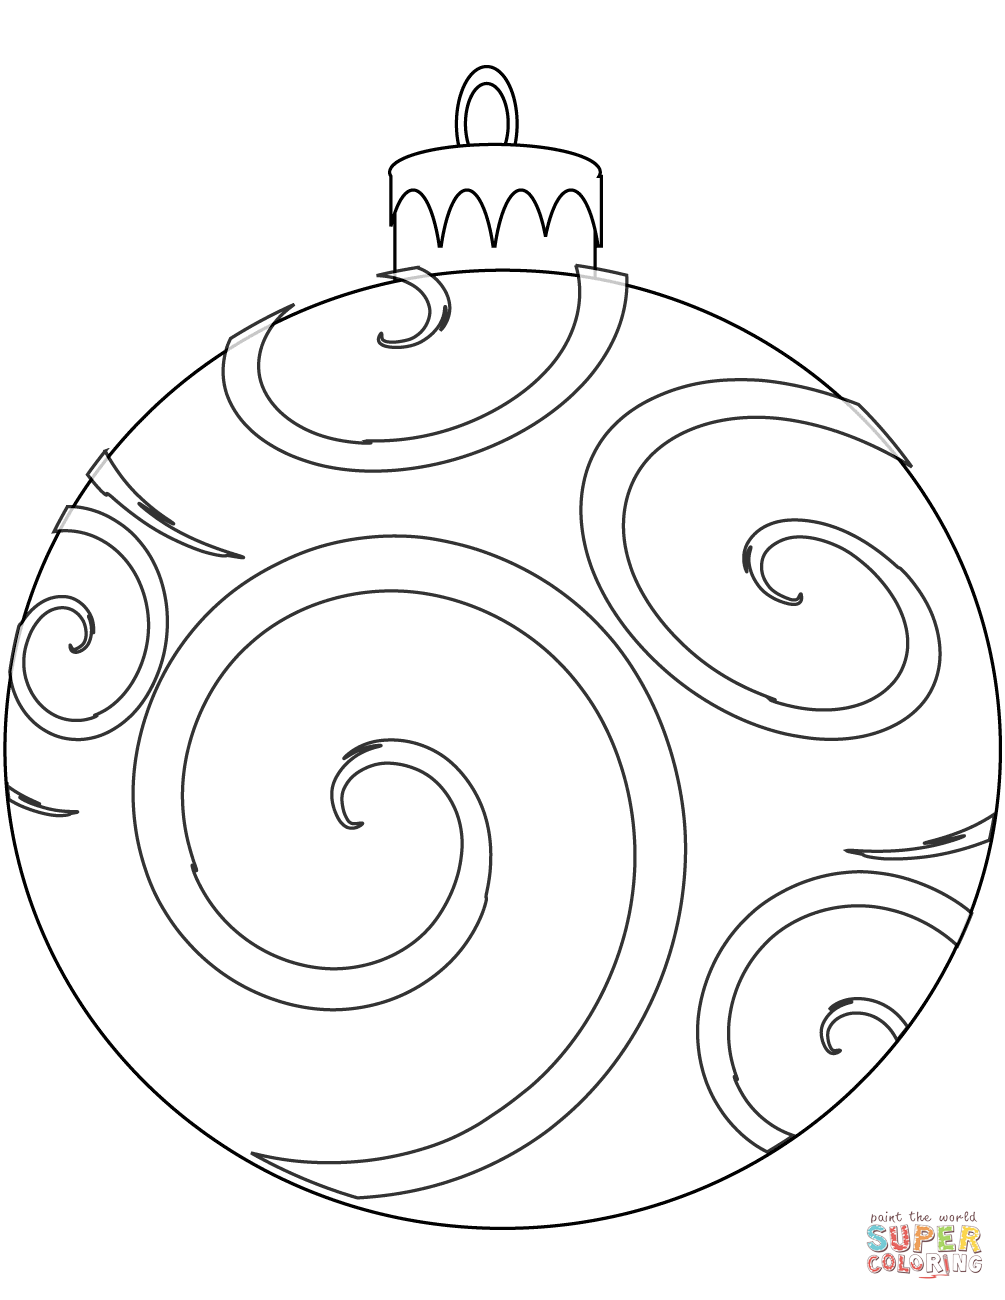 Coloring Pages With Christmas Ornaments Holiday Ornament Page Free Printable